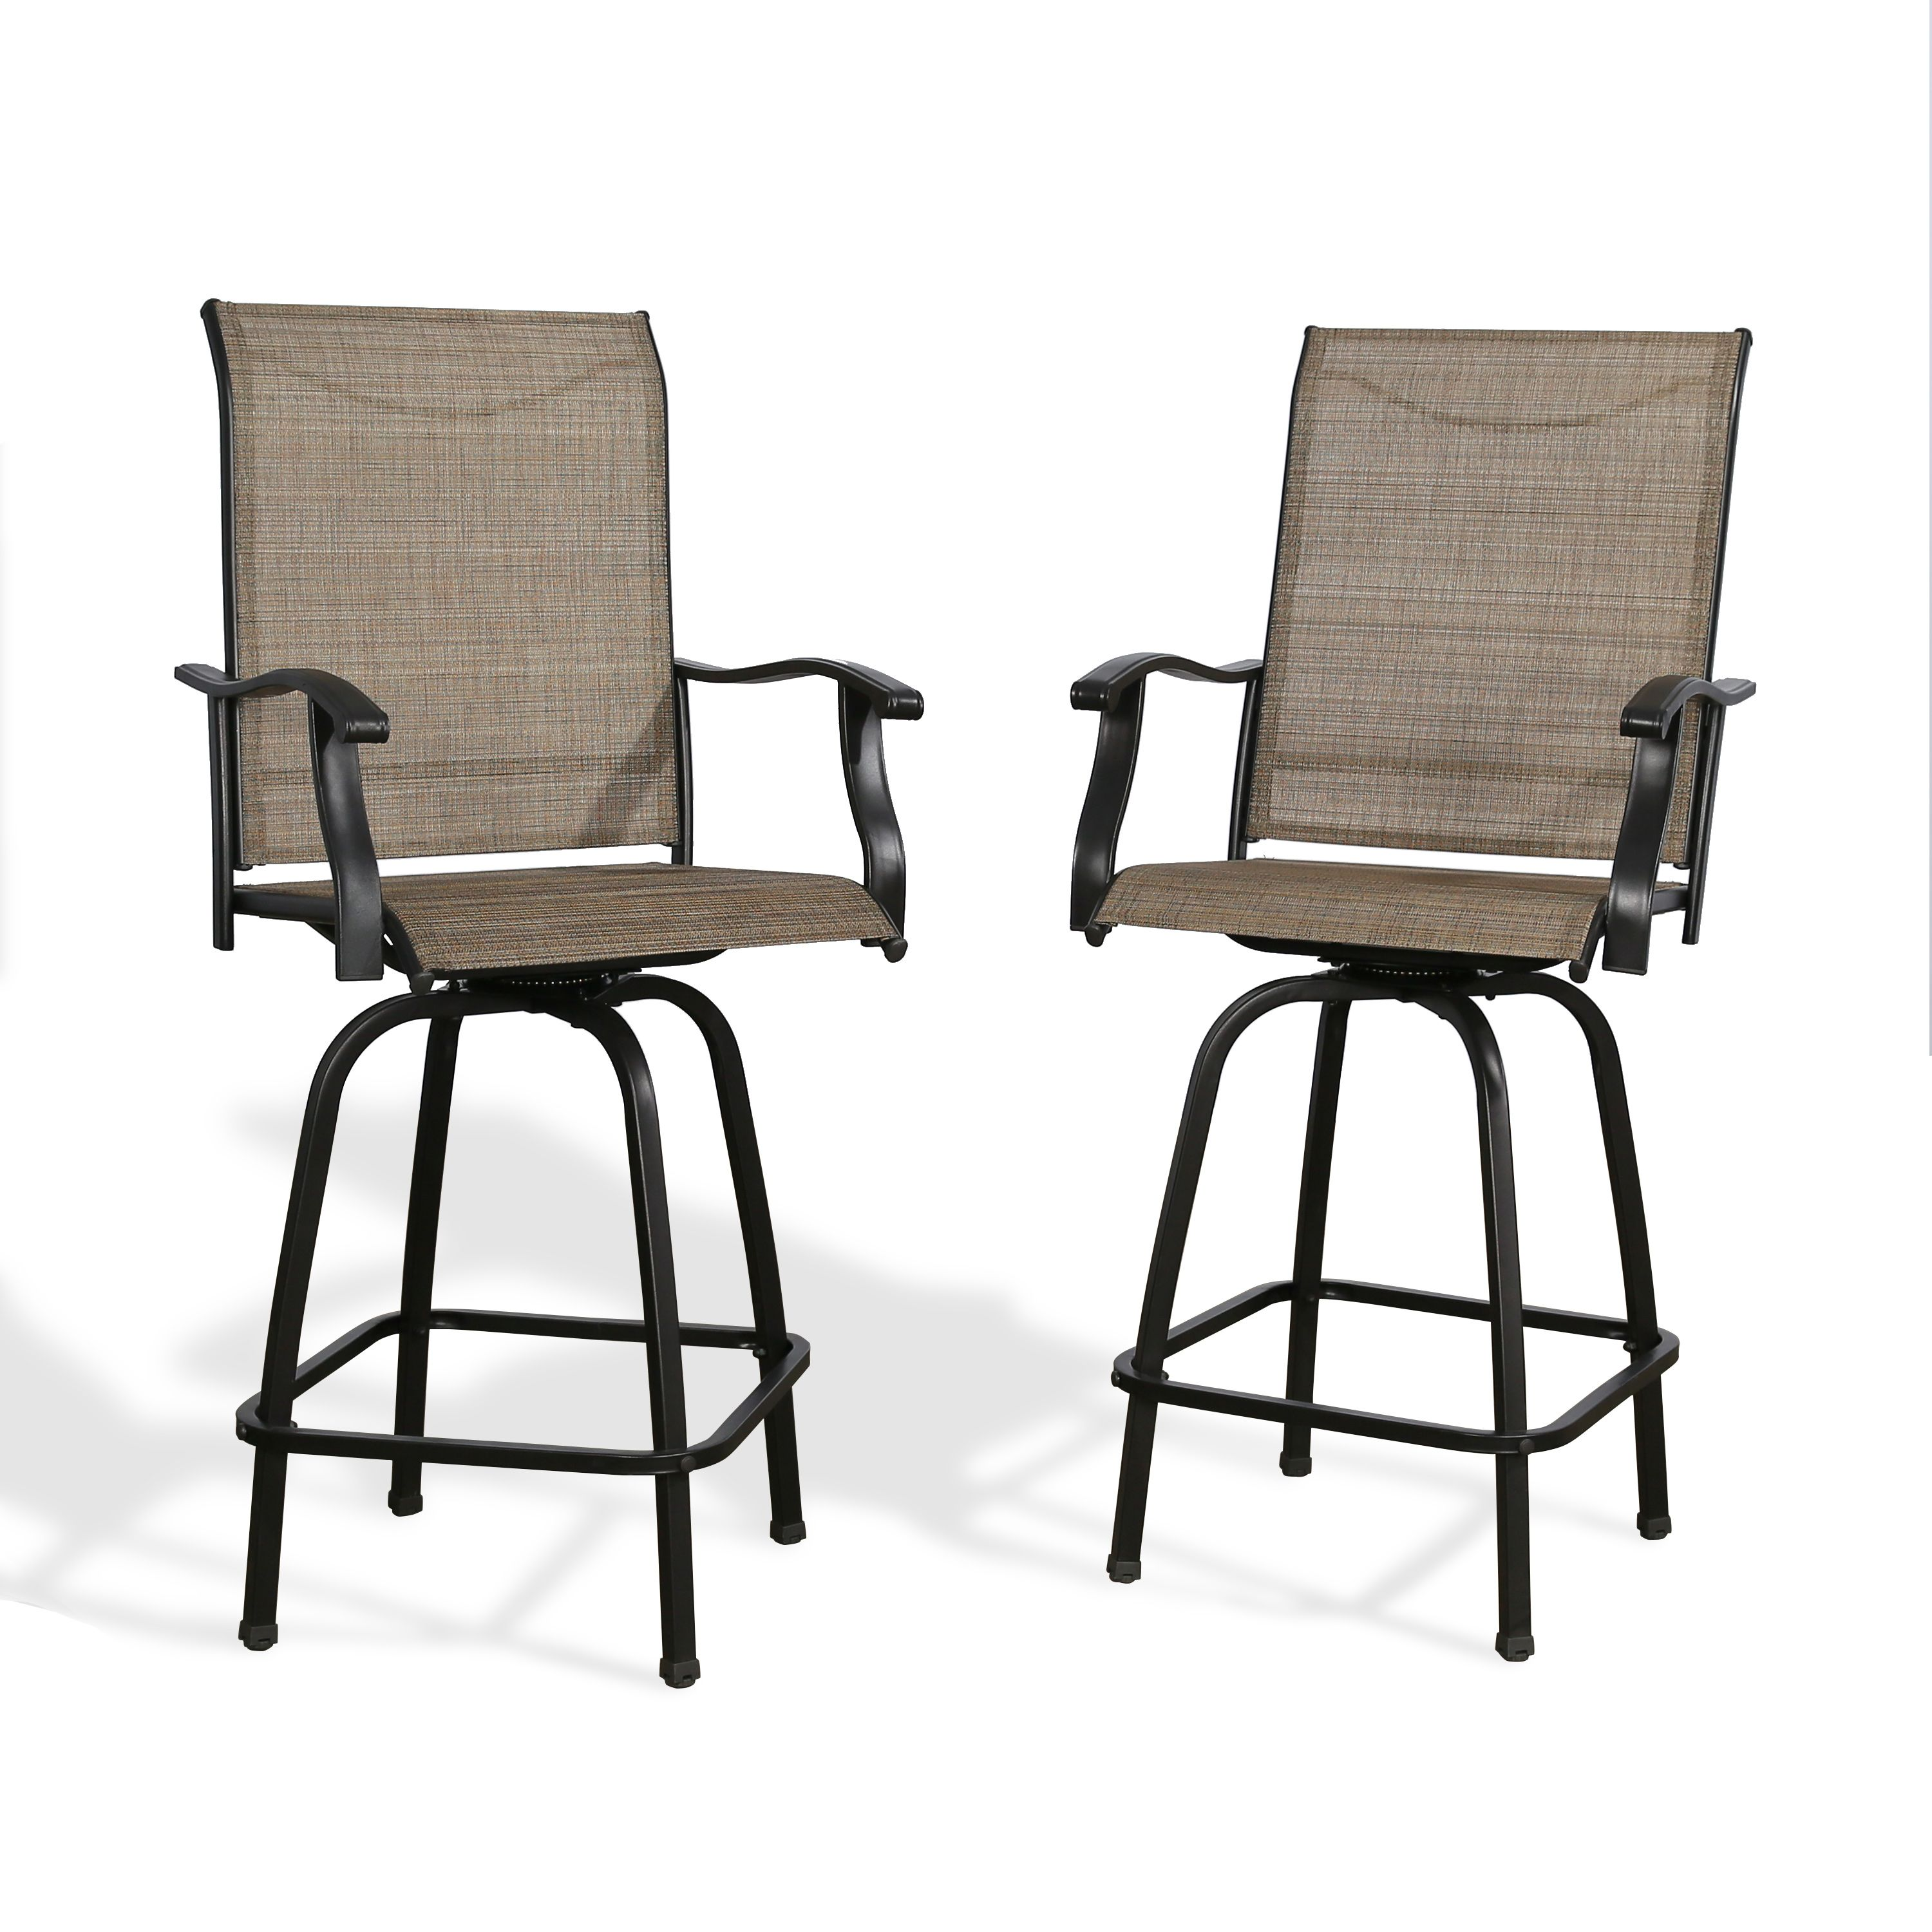 Ulax Furniture Outdoor 2 Piece Swivel Bar Stools High Patio Chairs With Sling Seat Walmart Com In 2021 Outdoor Bar Stools Swivel Bar Stools Patio Chairs